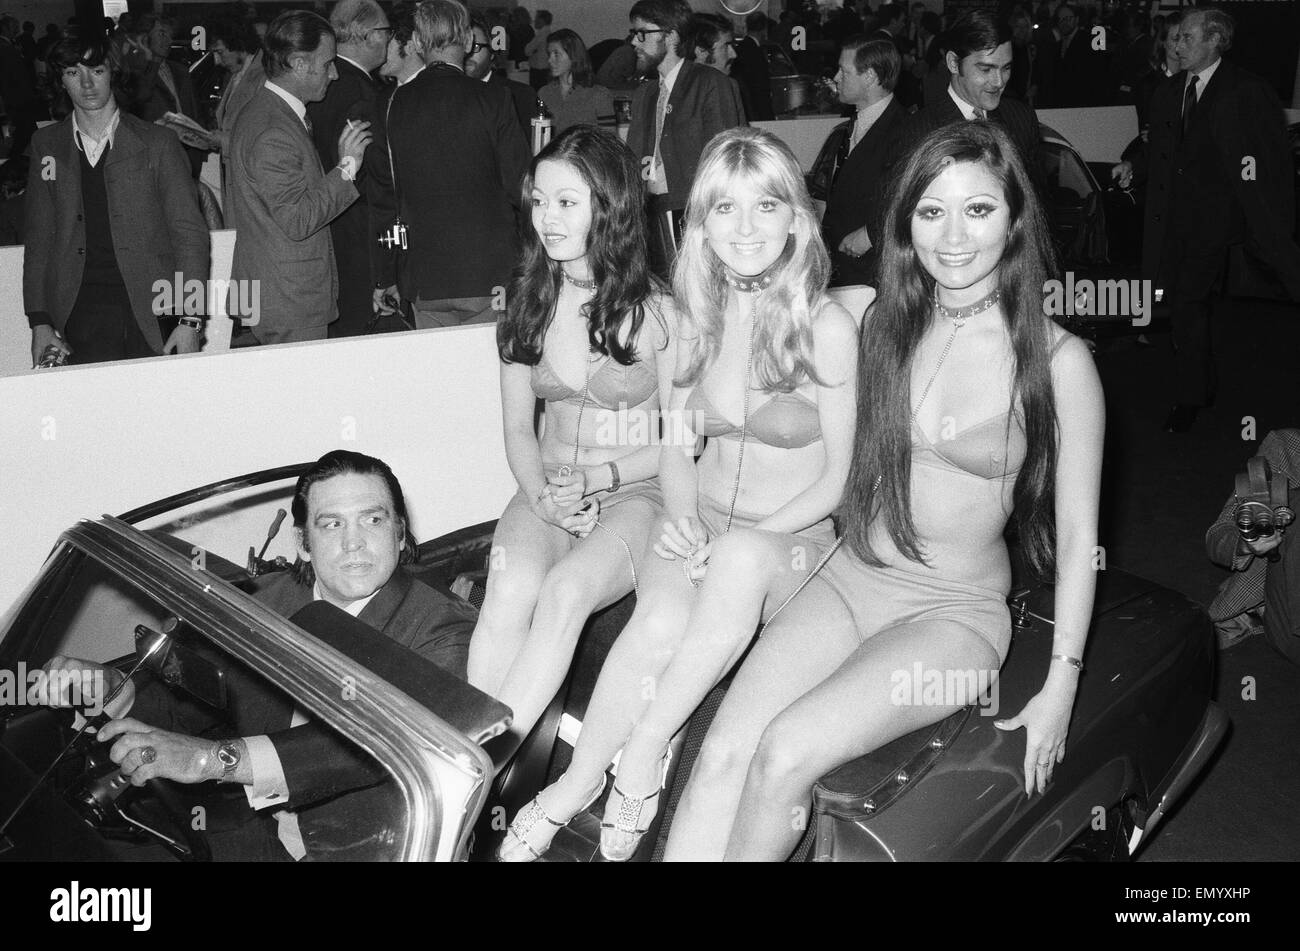 Models are driven to their stand at the 1971 Earls Court motor show 19th October 1971 - Stock Image